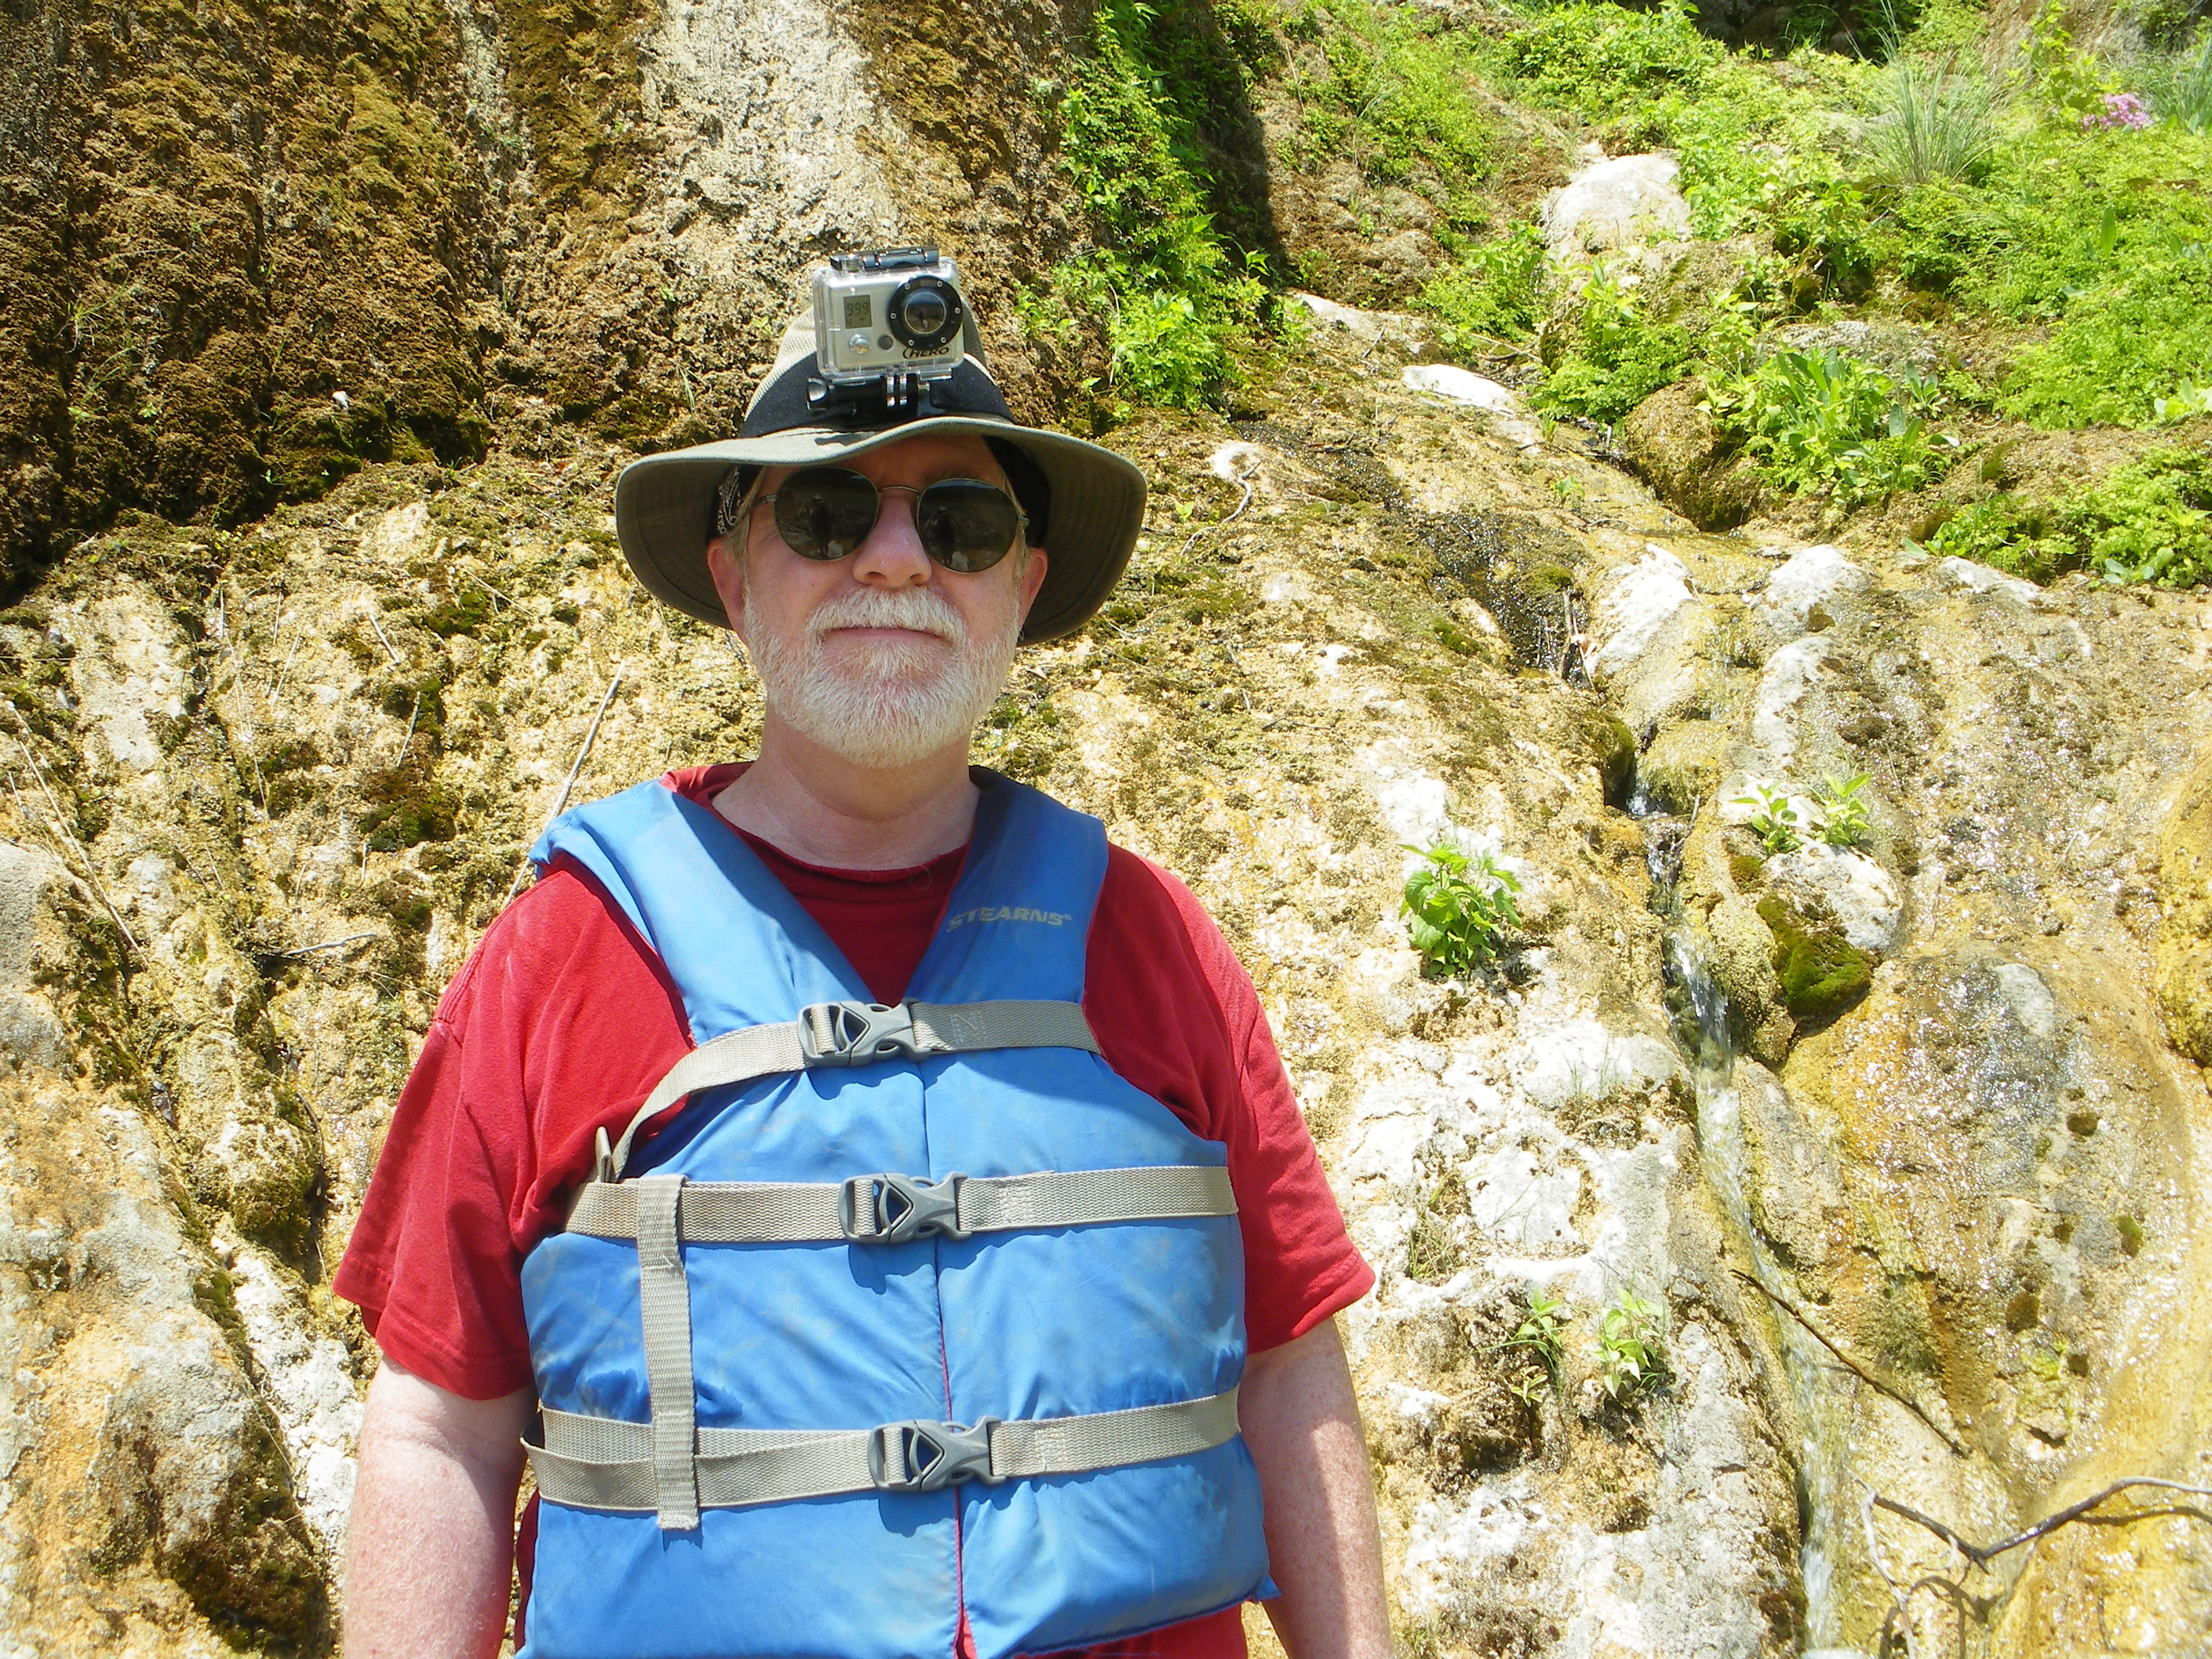 Ed Darrell at Colorado Bend State Park, Texas